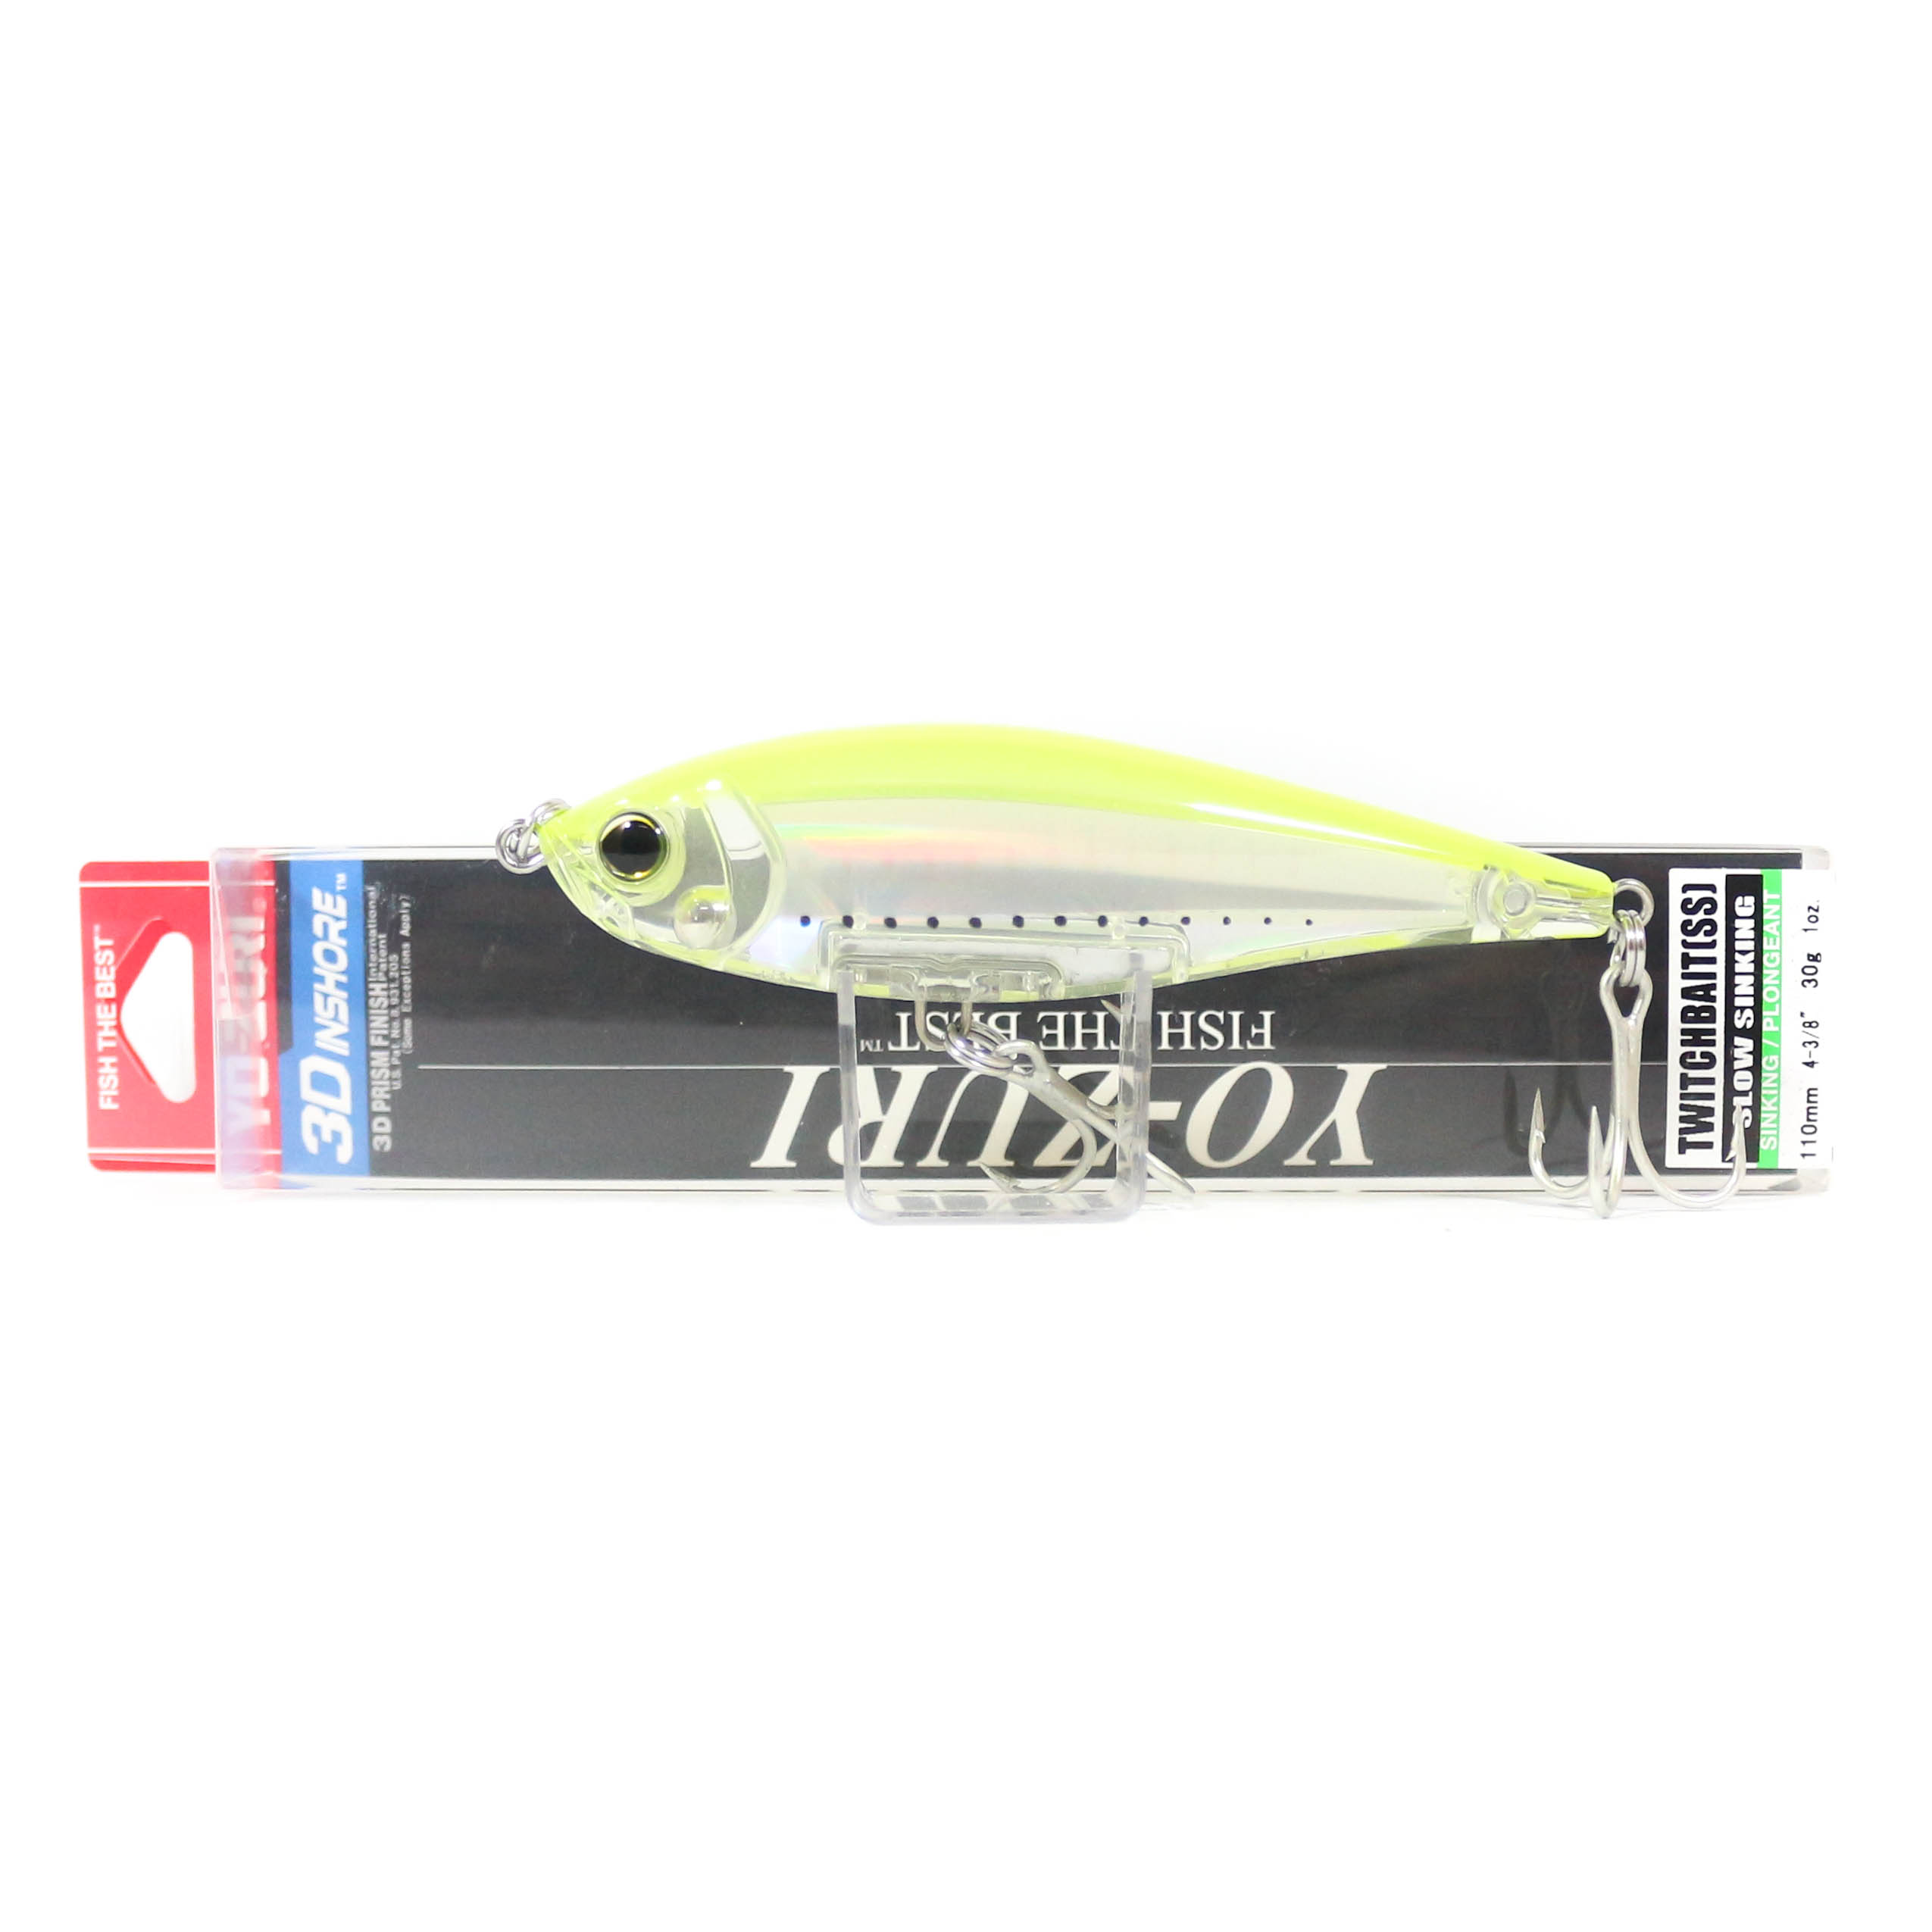 Yo Zuri Duel 3D Inshore Twitchbait 110SS Slow Sinking Lure R1348-GHCS (9328)